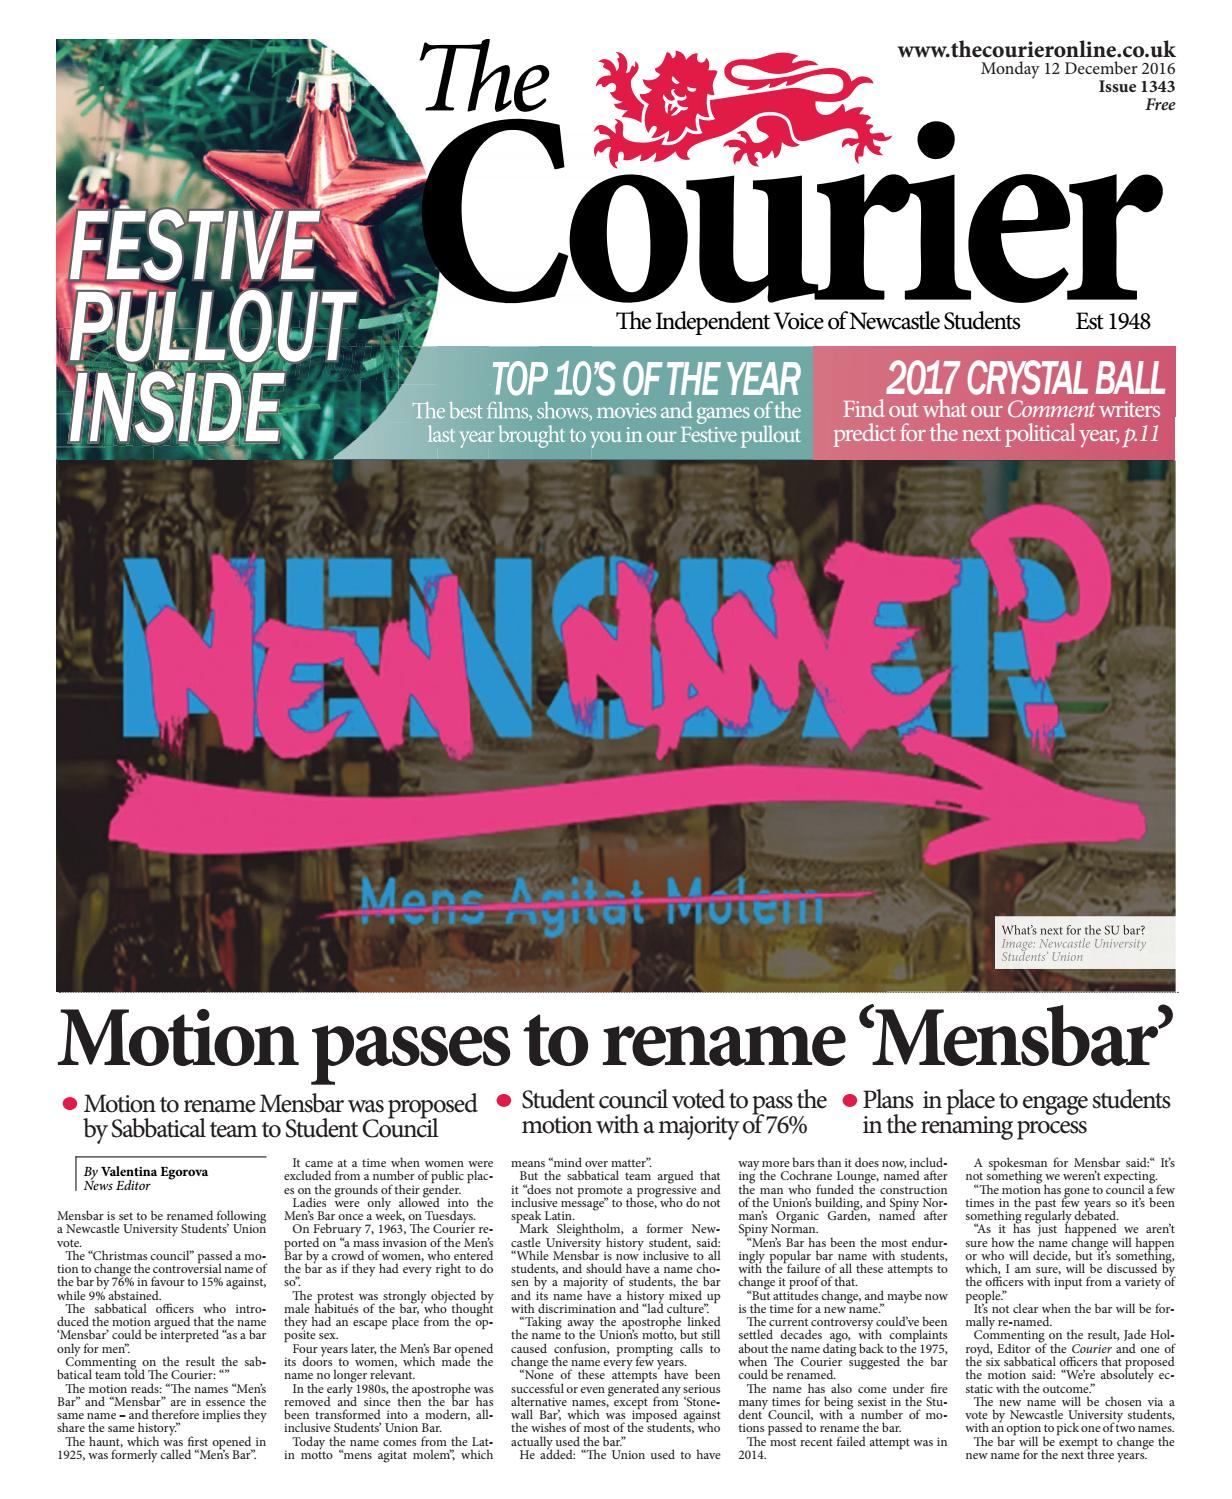 37c8636fb9 Courier 1343 by The Courier Online - issuu